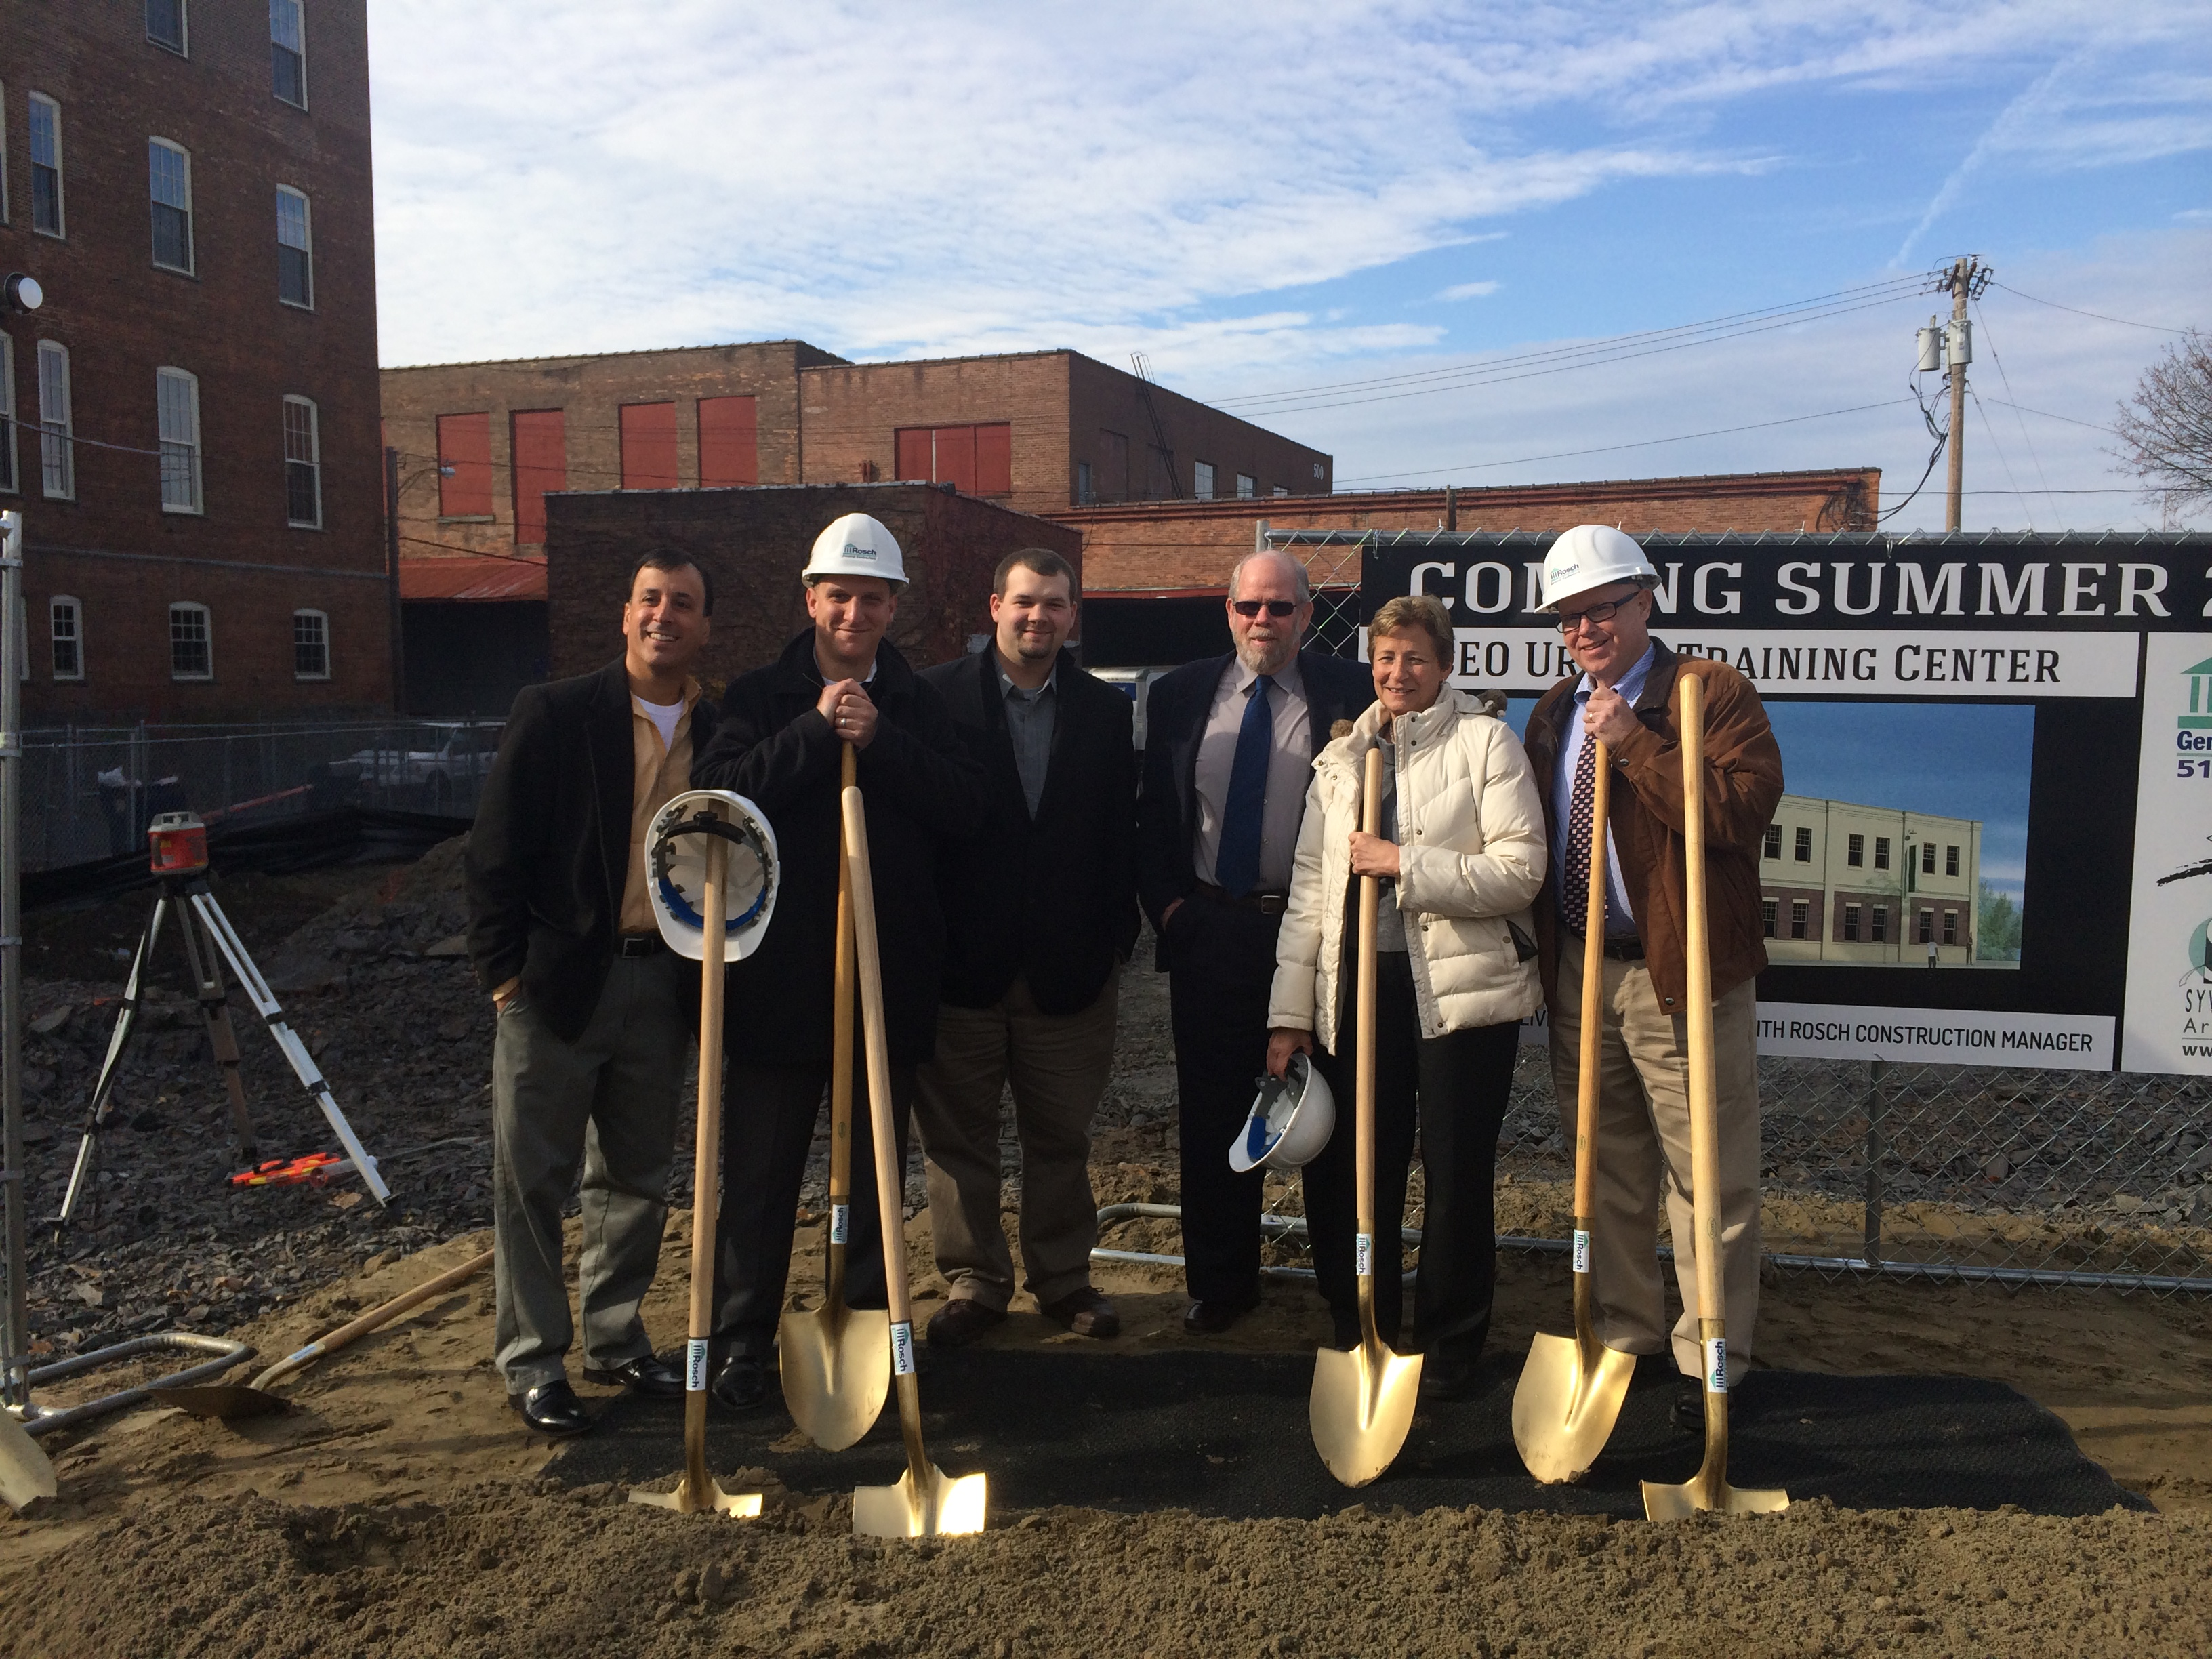 CEO Breaks Ground, Thanks Donors and Supporters